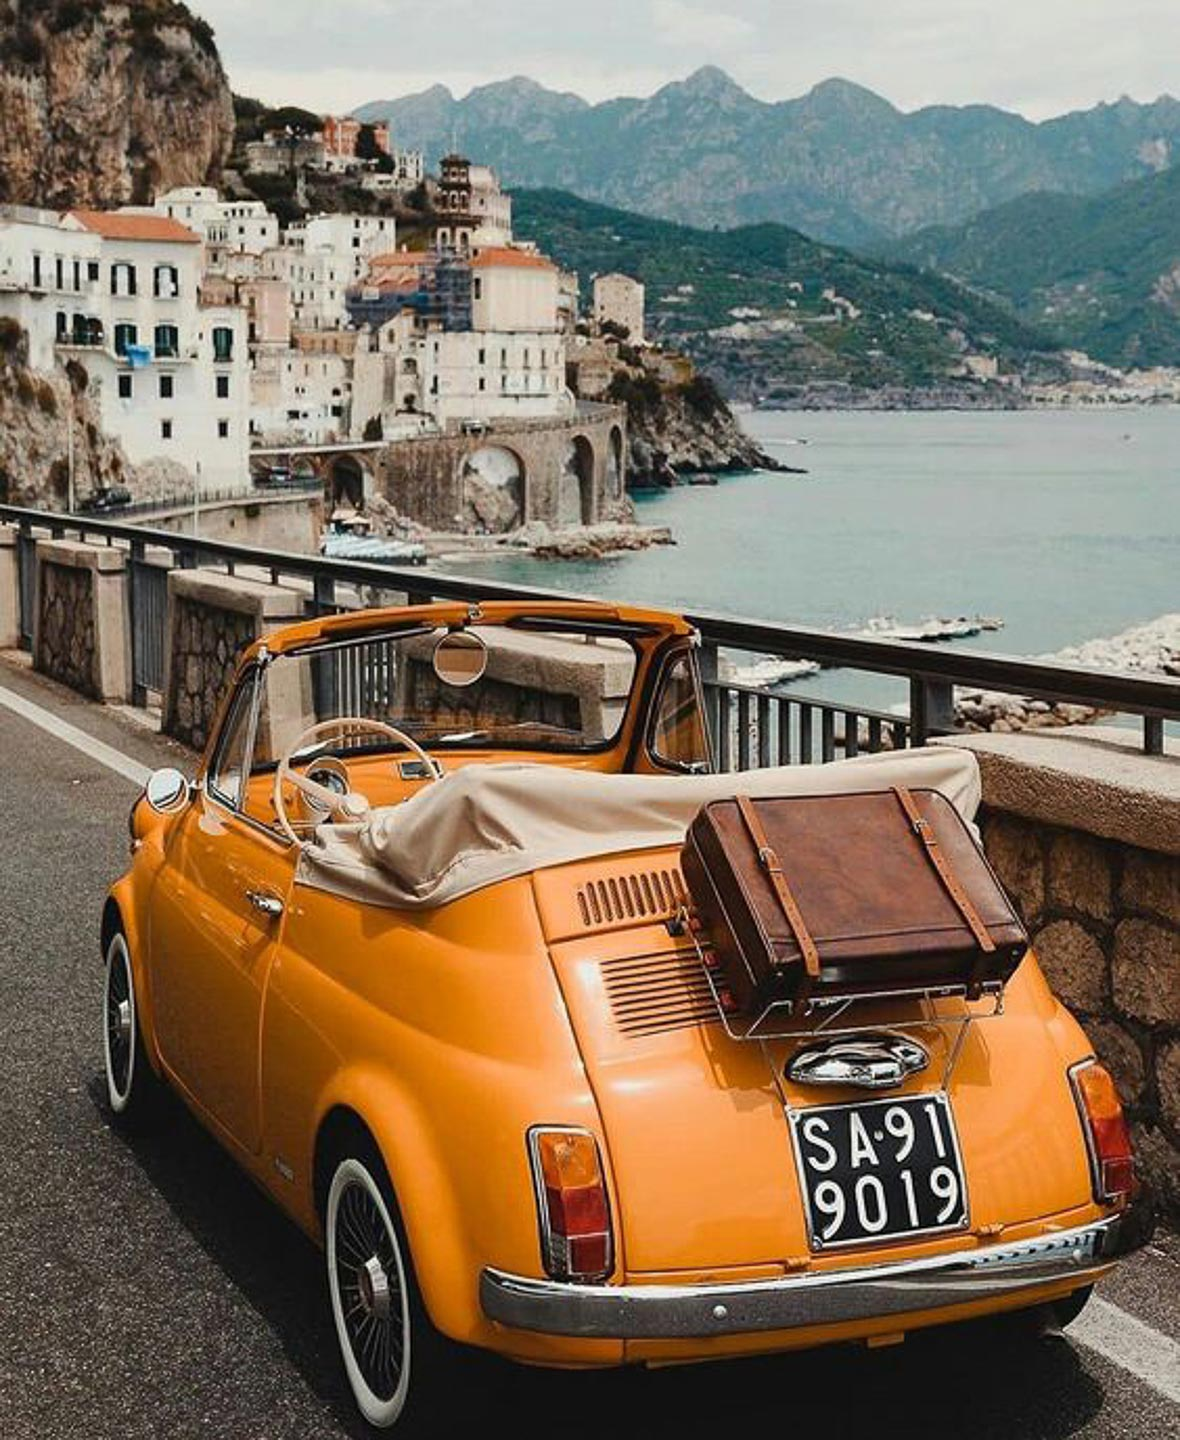 The Heritage Collection luxury Villa Astor Amalfi coast Italy property exclusiveerge super chic accommodation gorgeous Suite interiors top destination vintage car